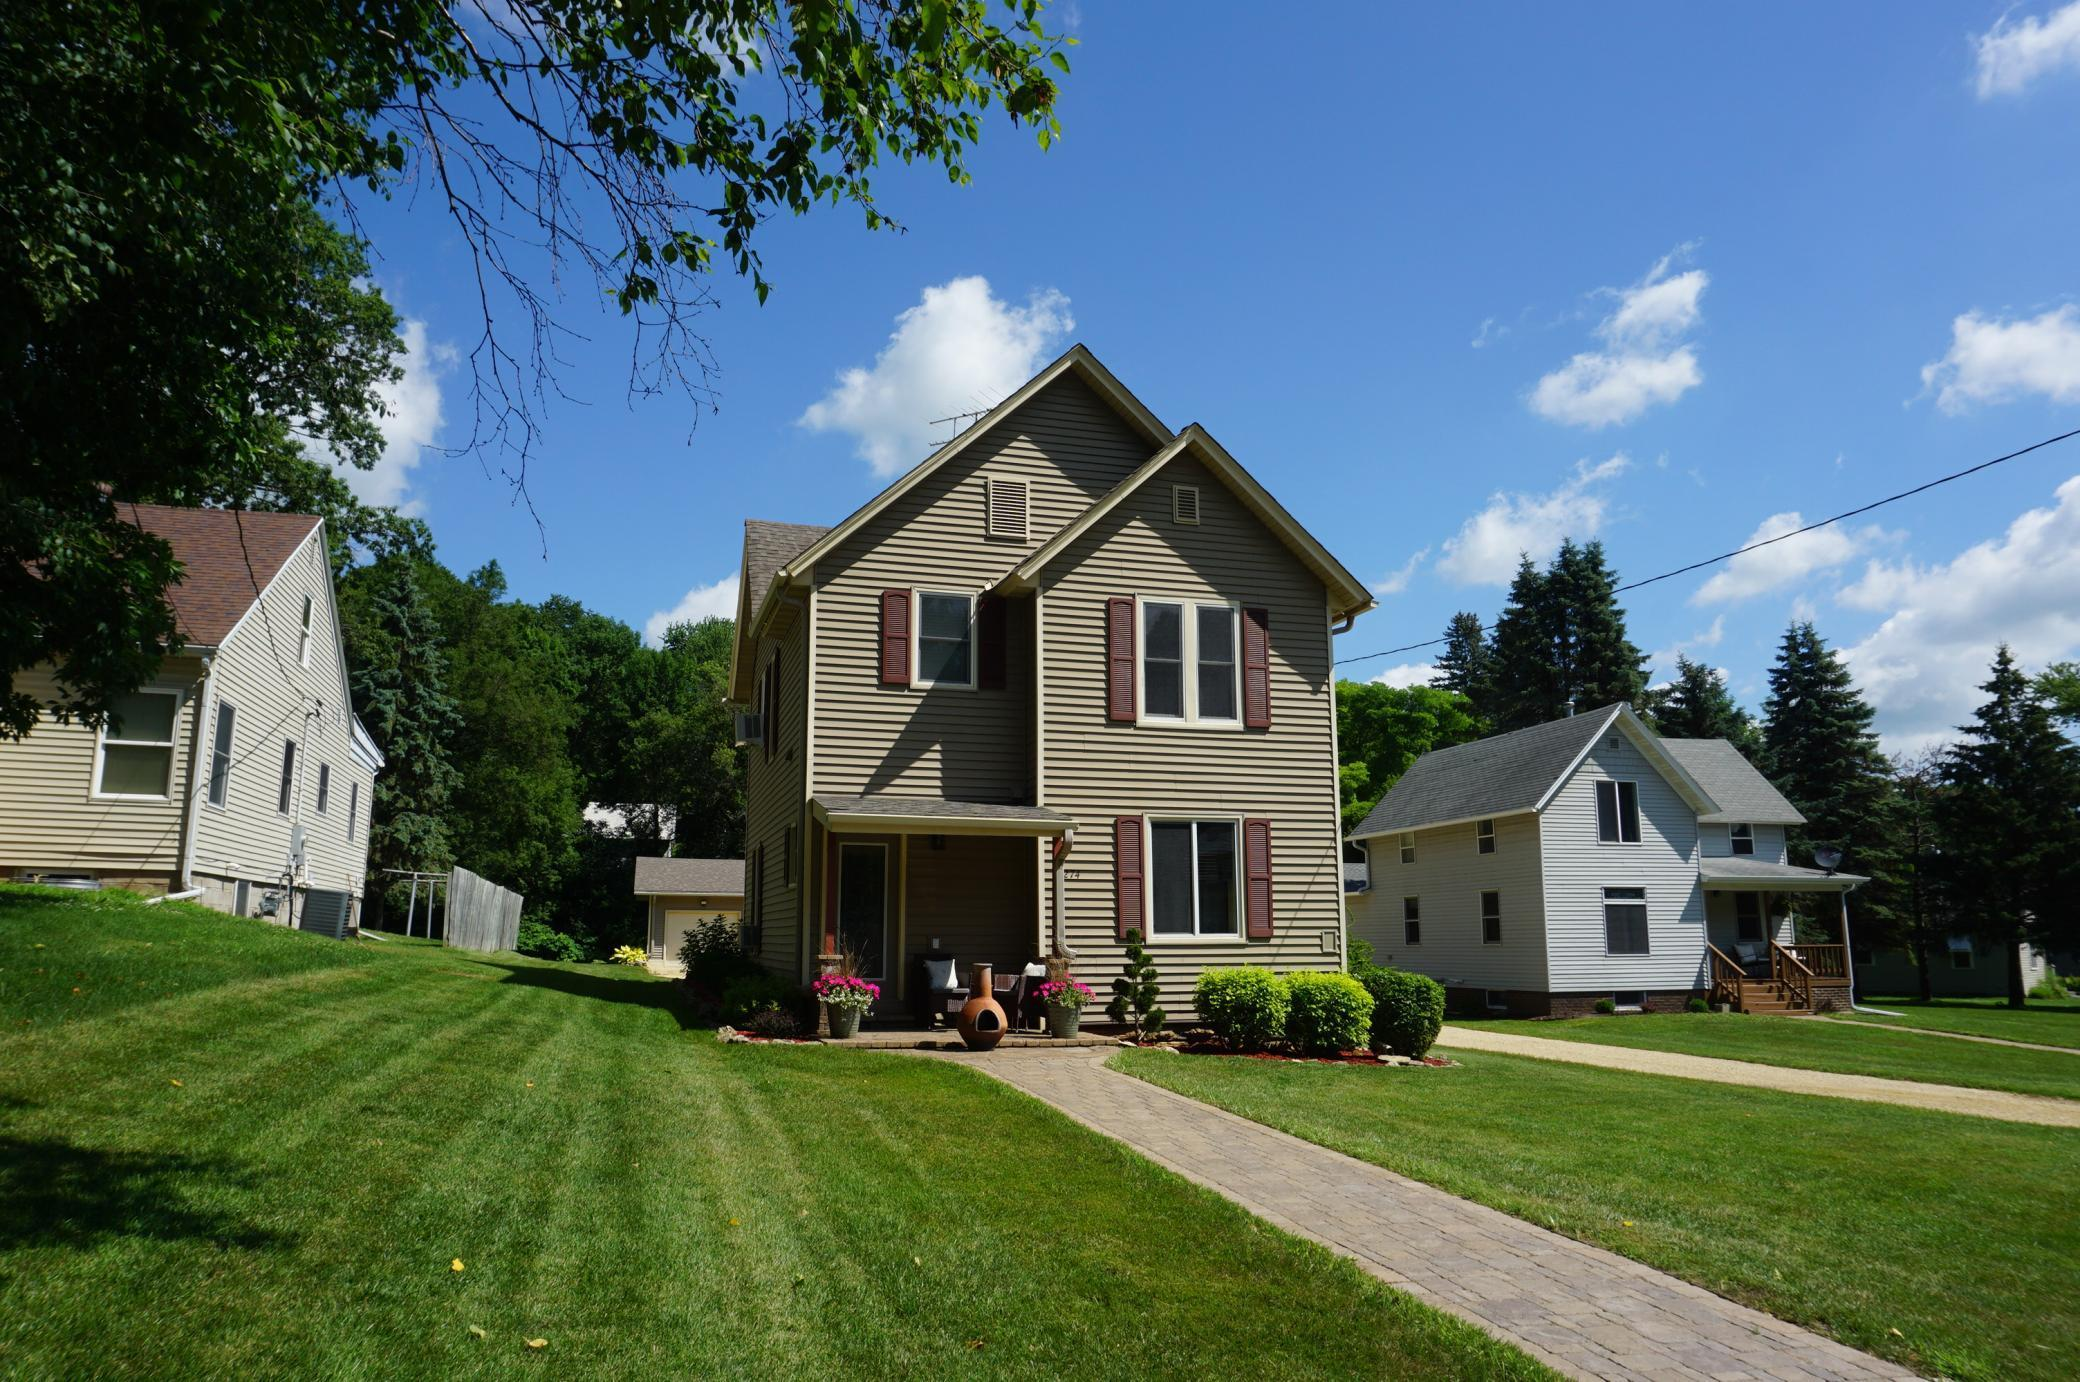 274 Main Property Photo - Ellsworth, WI real estate listing